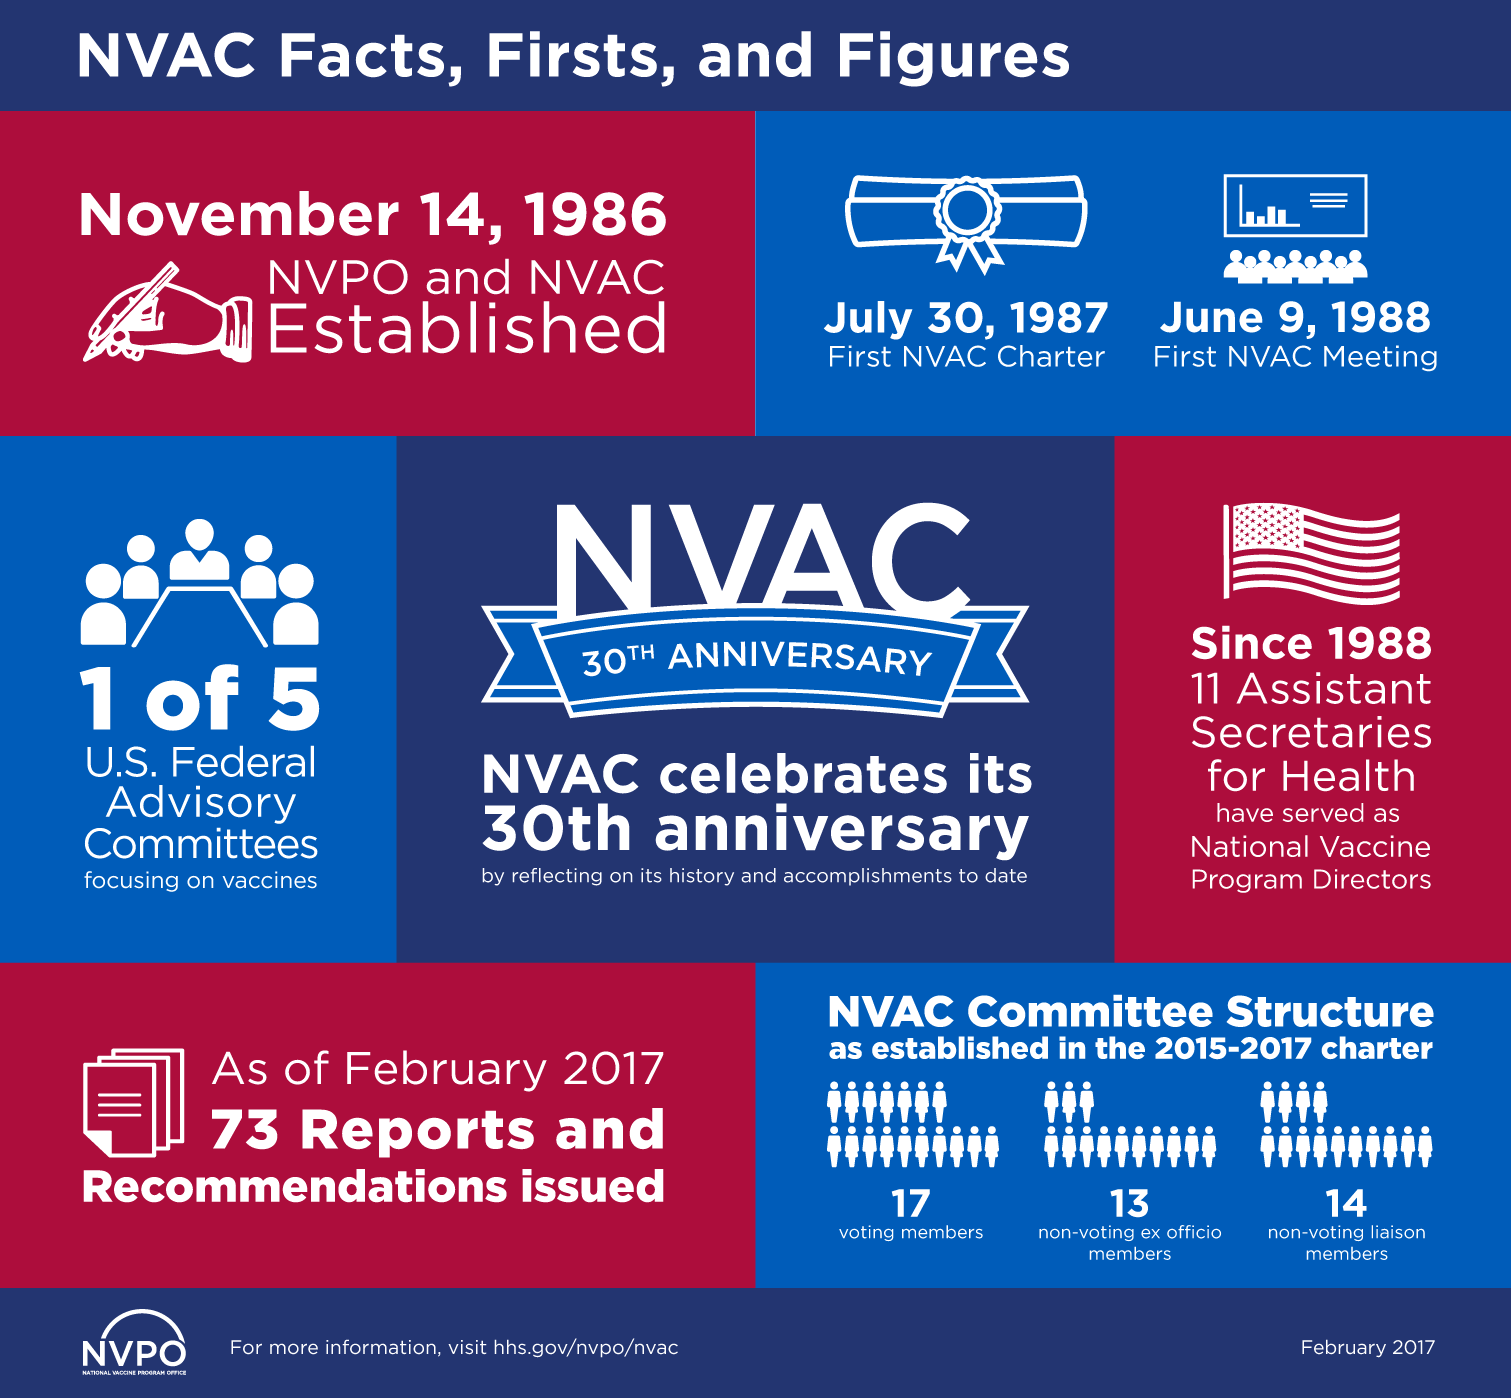 NVAC Facts, Firsts, and Figures. November 14, 1986: NVPO and NVAC established. July 30, 1987: First NVAC Charter. June 9, 1988: First NVAC meeting. 1 of 5 U.S. Federal Advisory Committees focusing on vaccines. NVAC 30th Anniversary